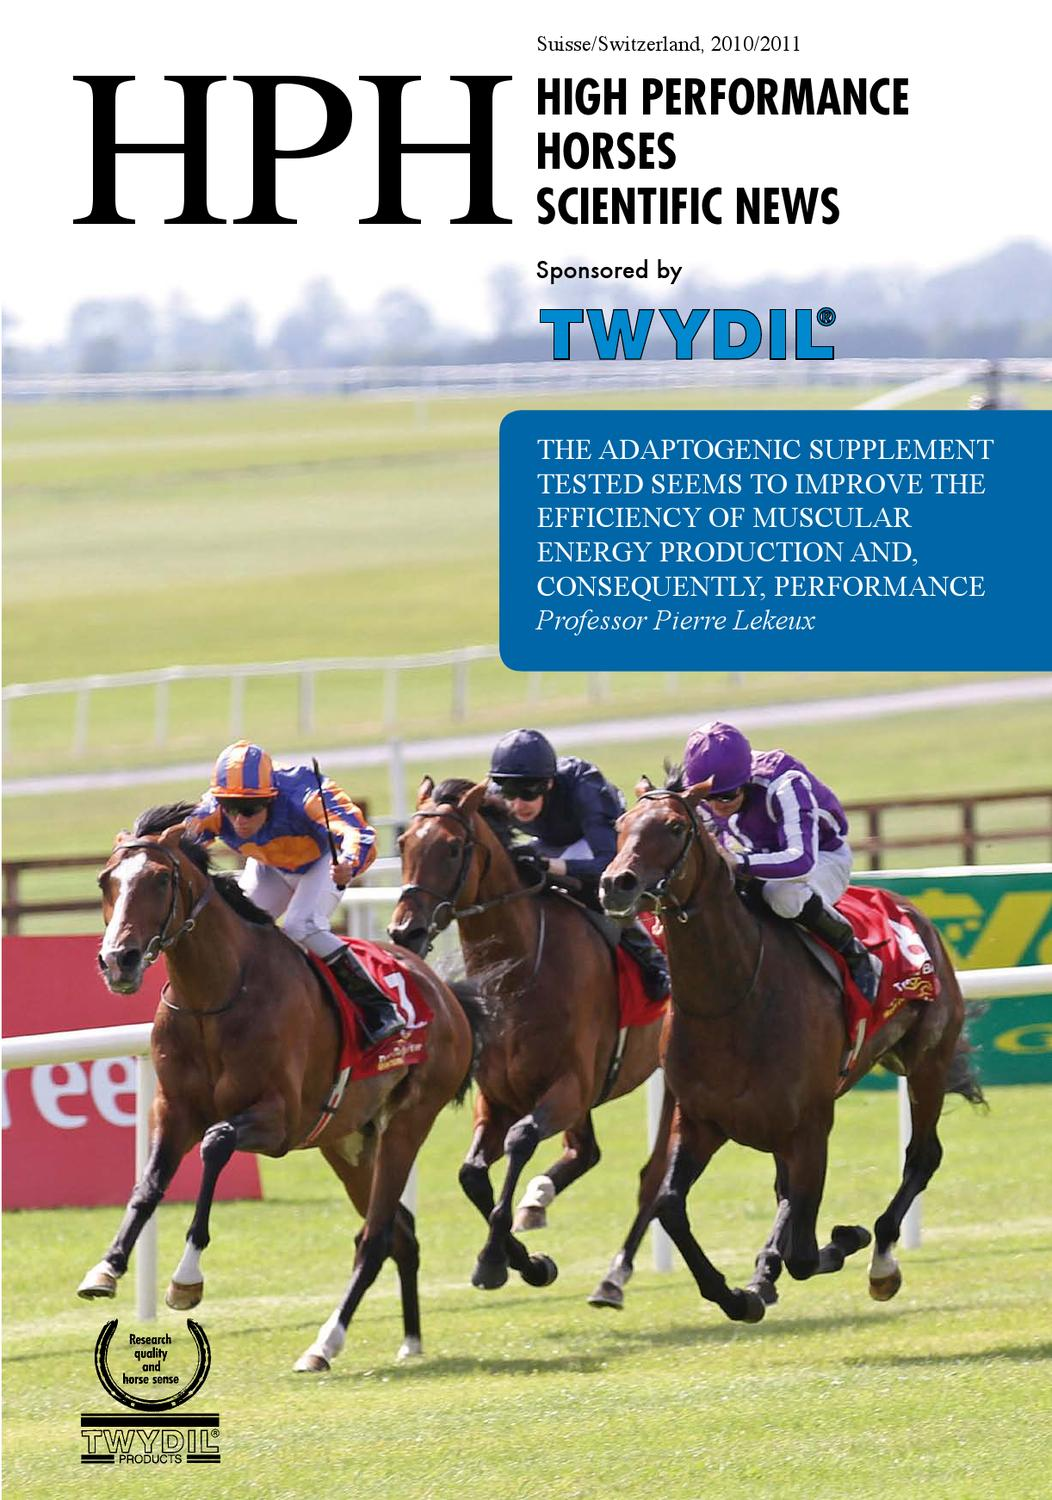 High Performance Horses 2011/2012 by TWYDIL - issuu